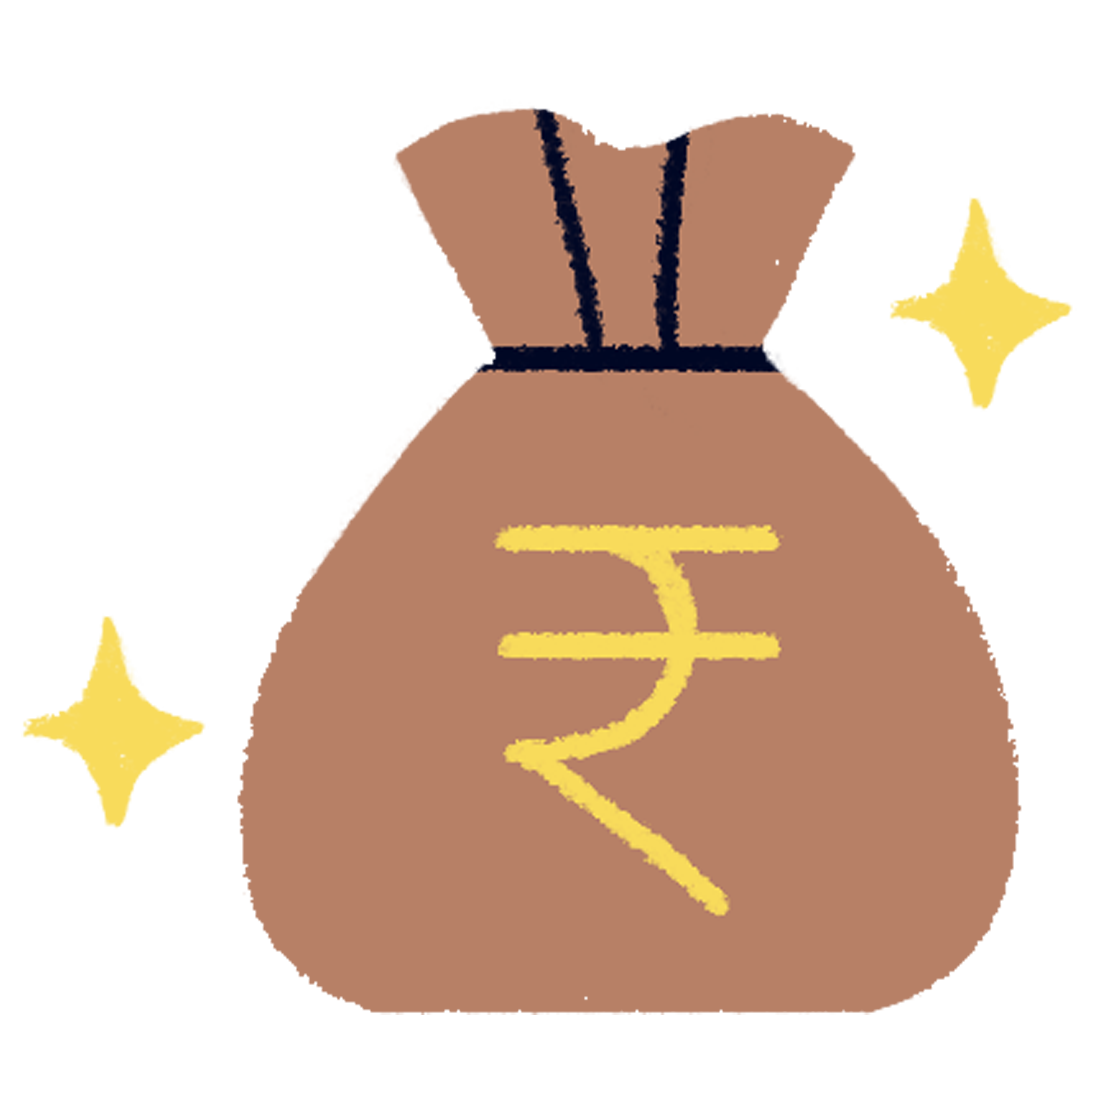 A bag full of money with a Rupee symbol on it representing earnings from the MyMuse Insider program